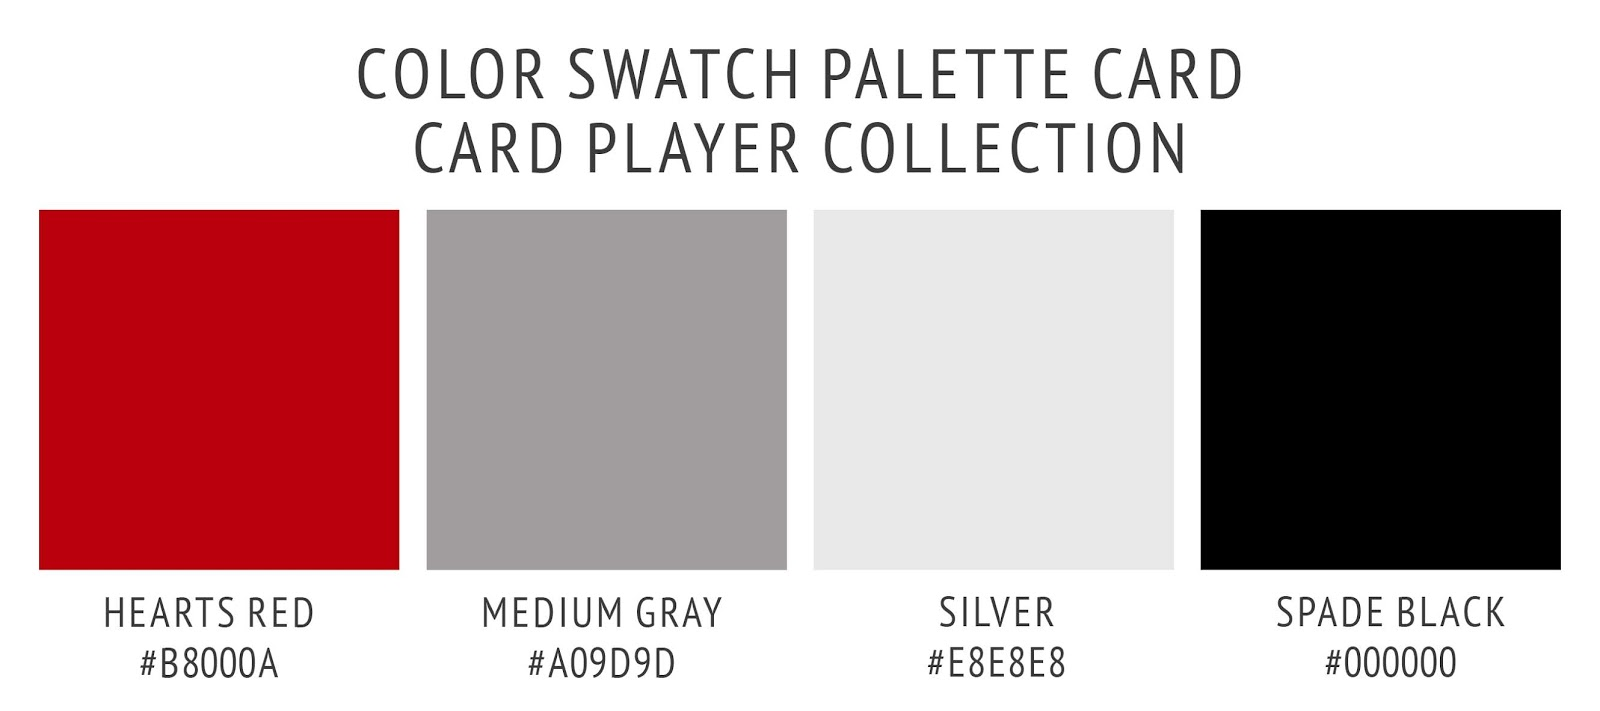 Card player color palette swatch card in hearts red, medium gray, silver, and spade black. Color scheme for a restaurant, bar, club, or man cave.